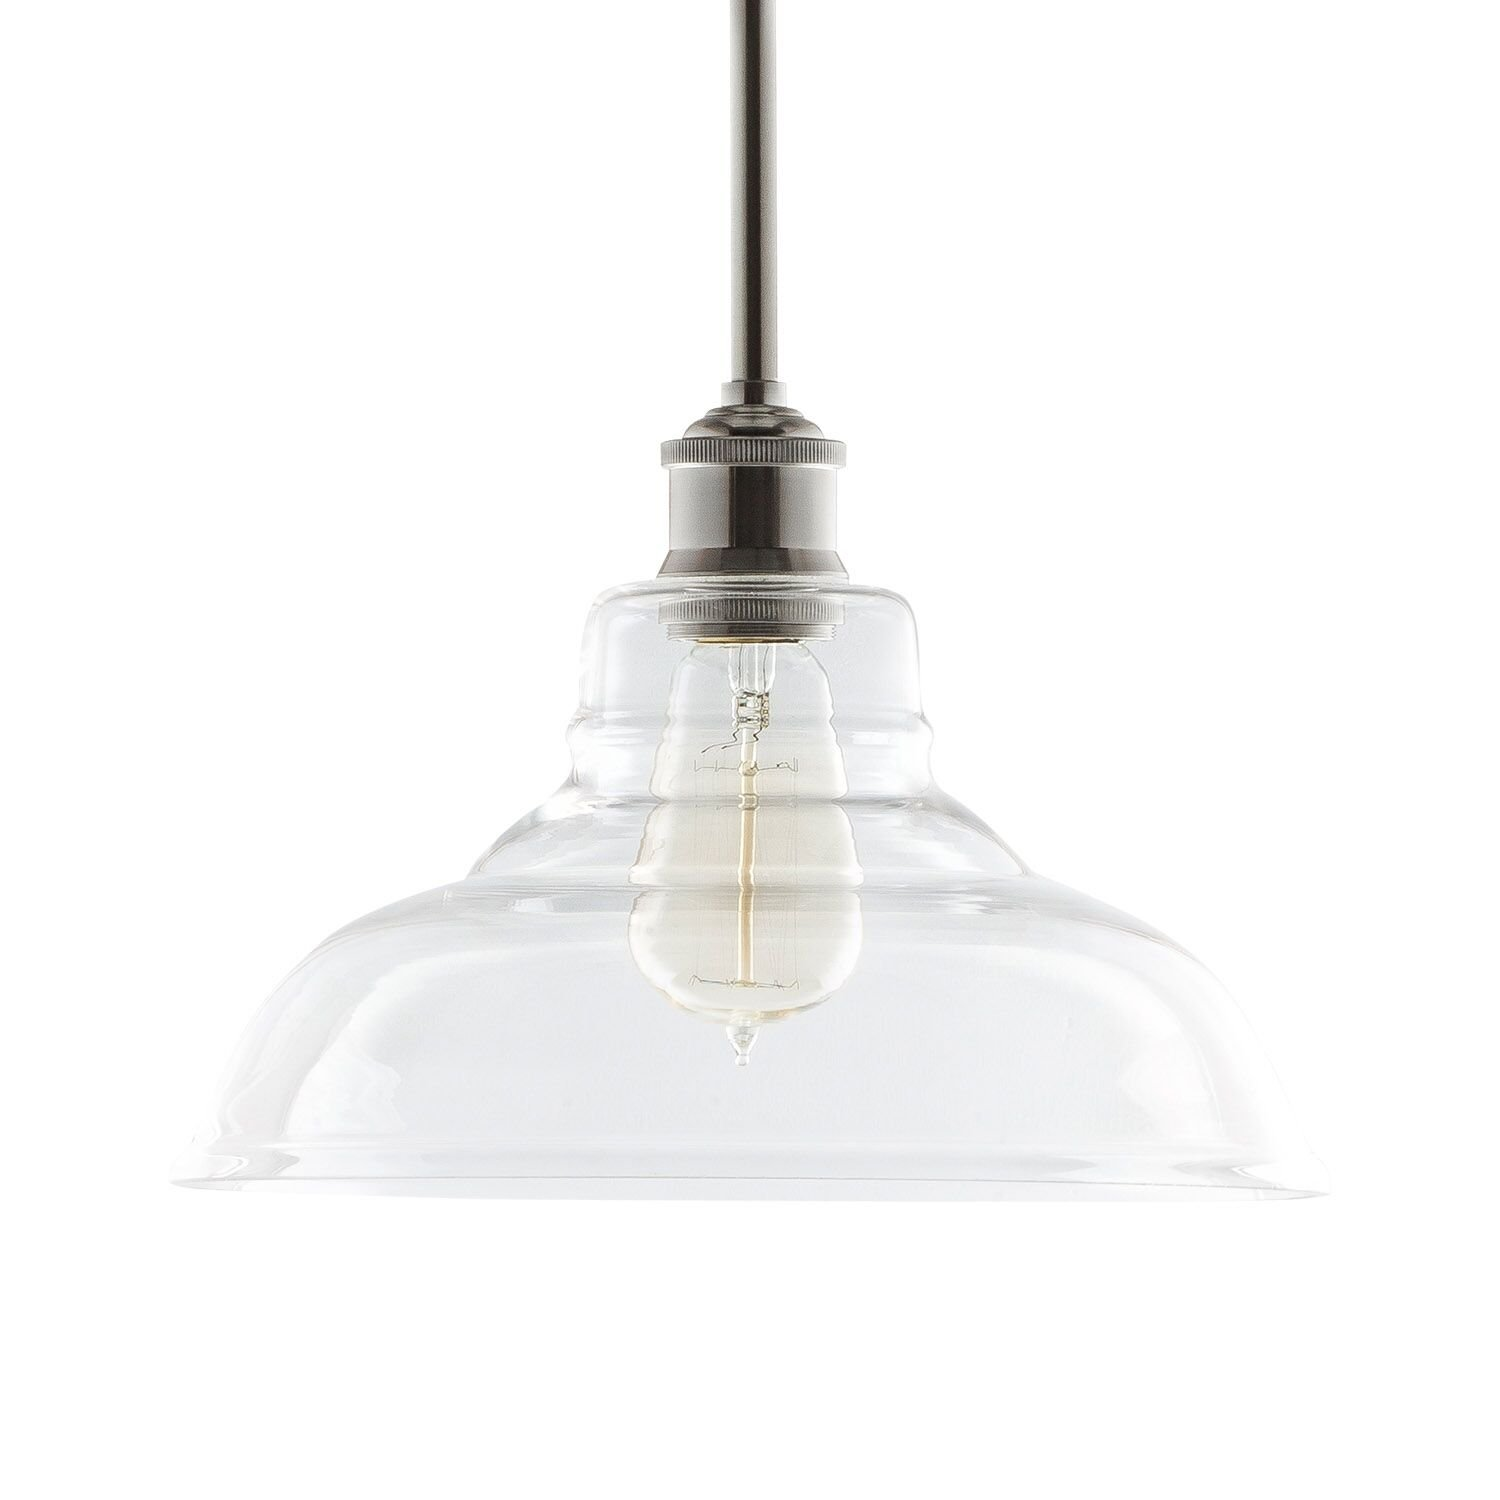 Amazon lamp shades tools home improvement - Lucera Stem Mount Factory Pendant Light Brushed Nickel Fixture With 11 Inch Clear Glass Shade Adjustable Hanging Height Modern Vintage Farmhouse Kitchen